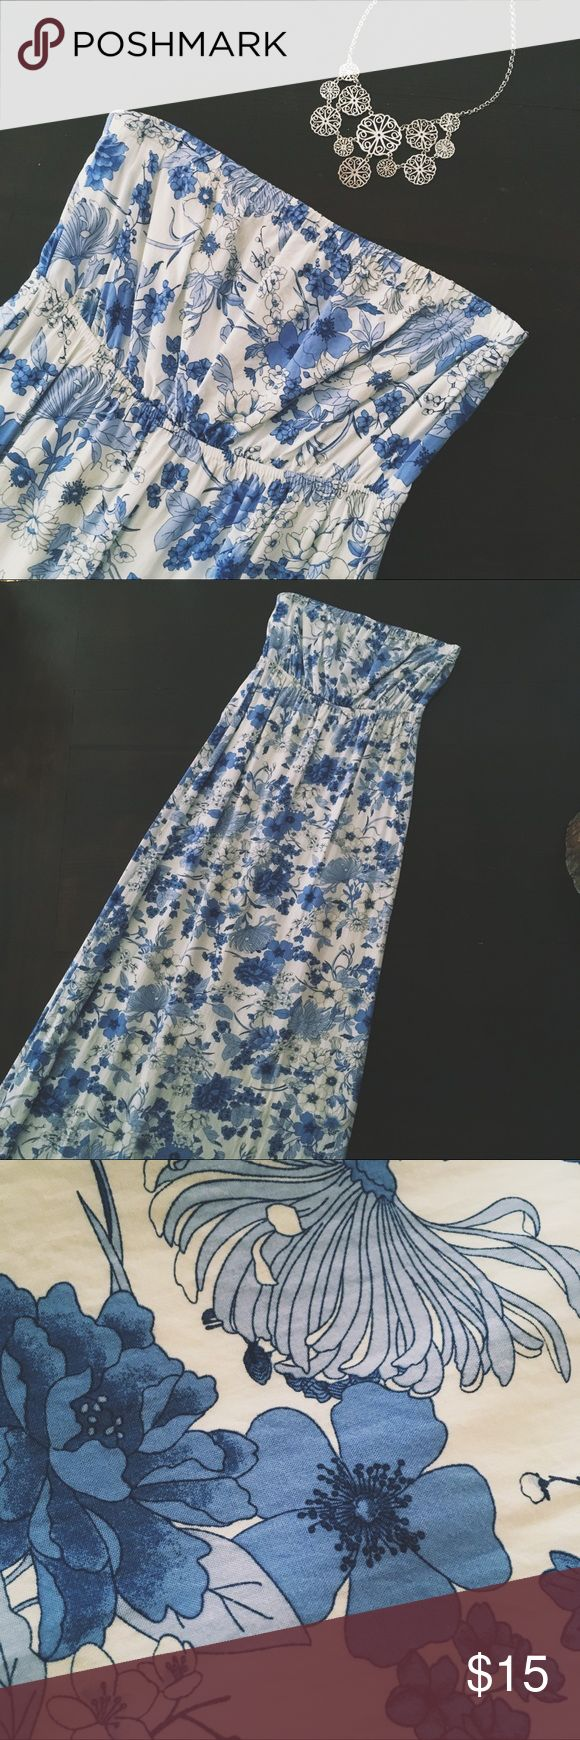 """""""Garden Queen"""" Maxi Dress Stunning and feminine strapless maxi dress feat. elastic waist and top band, slip layer and vibrant blue floral pattern. Reminds me of blue and white chinaware.   I'm 5'6"""" and it falls to around my ankles.  Only worn once for an occasion for a few hours. In excellent condition - still looks new! Old Navy Dresses Maxi"""